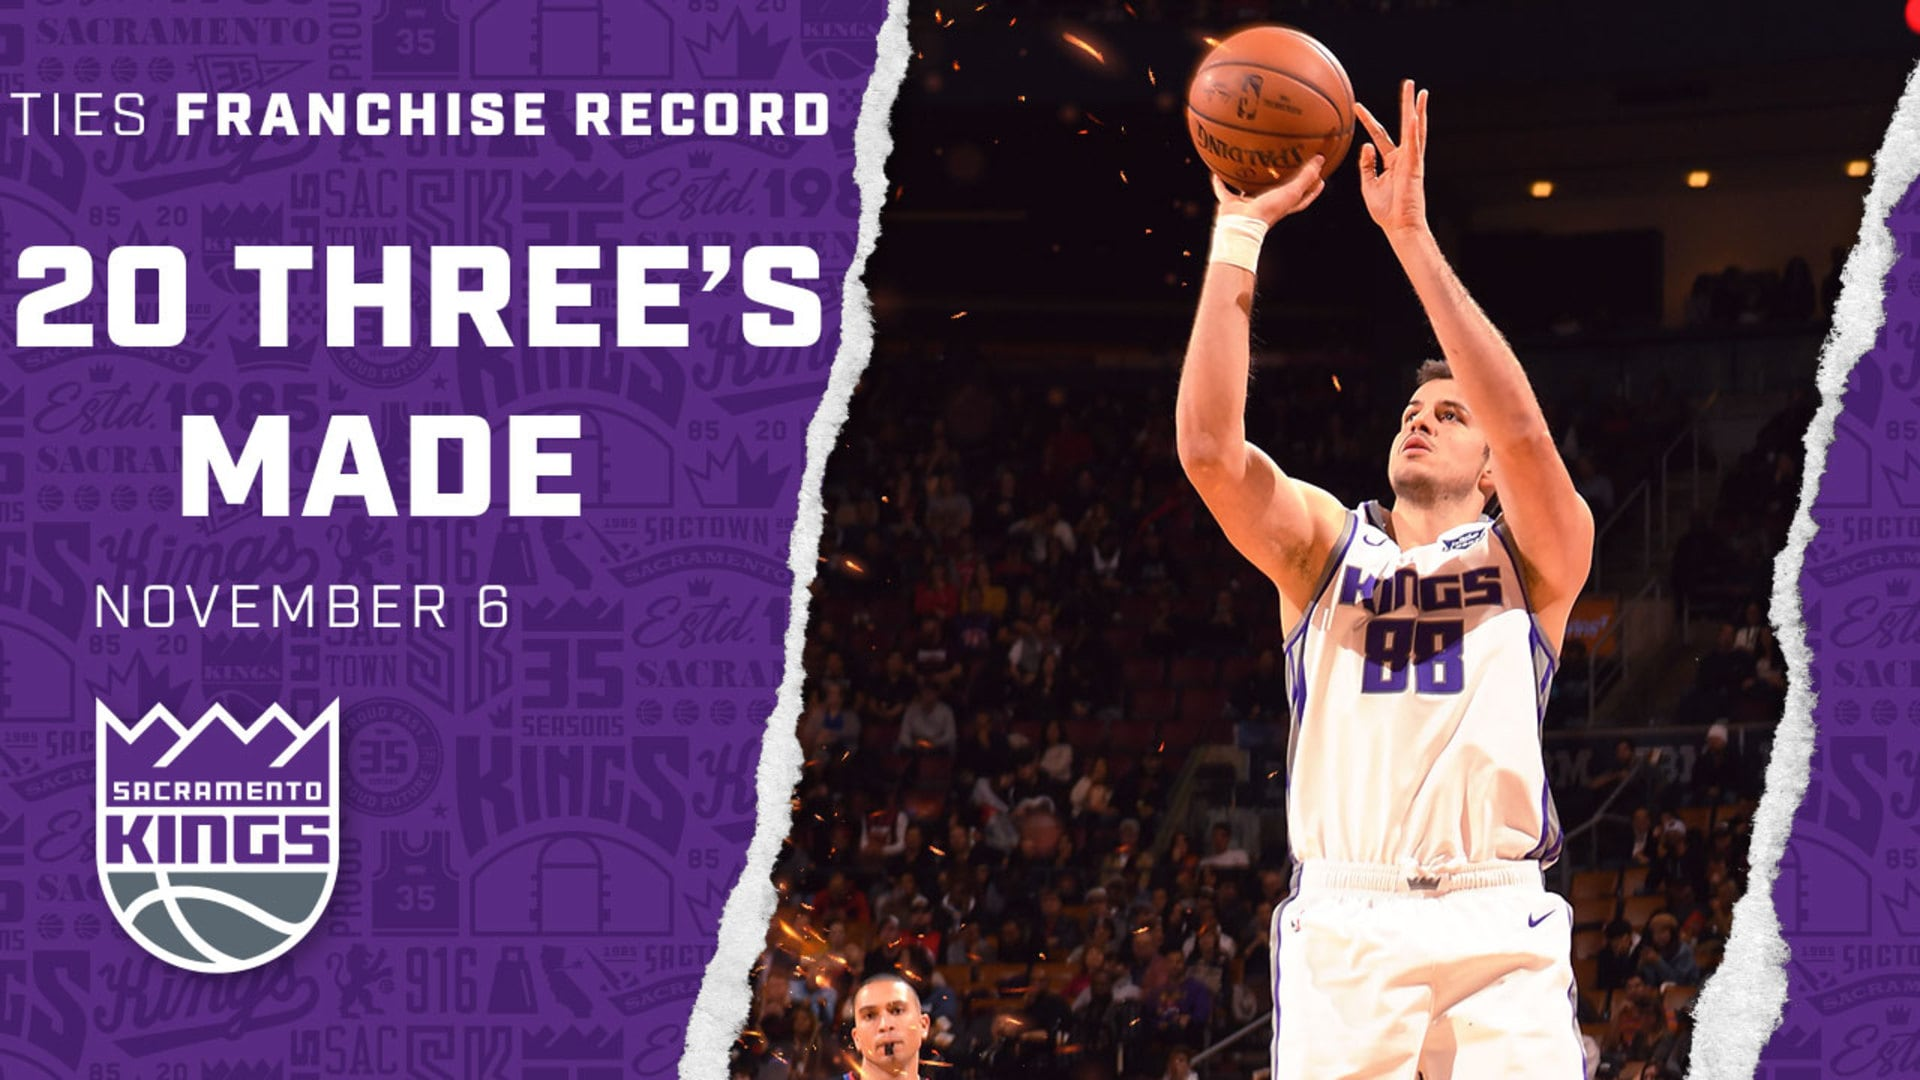 Kings Tie Franchise RECORD with 20 3-Pointers Made | Kings vs. Raptors